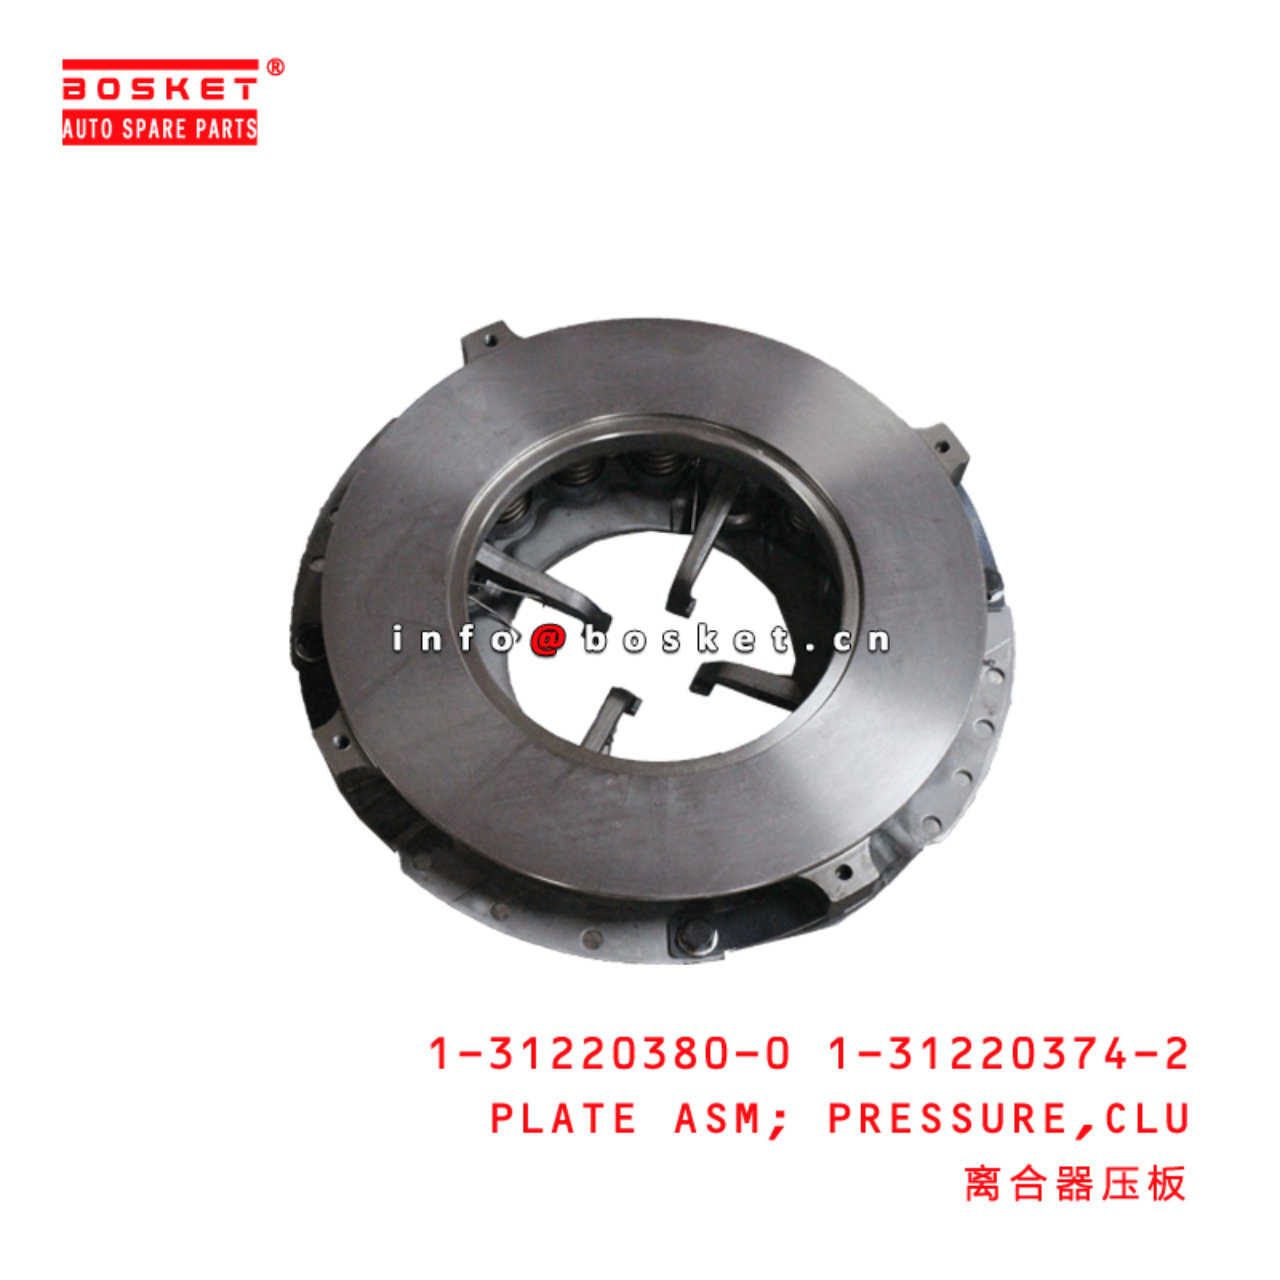 1-31220380-0 1-31220374-2 Clutch Pressure Plate Assembly 1312203800 1312203742 Suitable for ISUZU FV